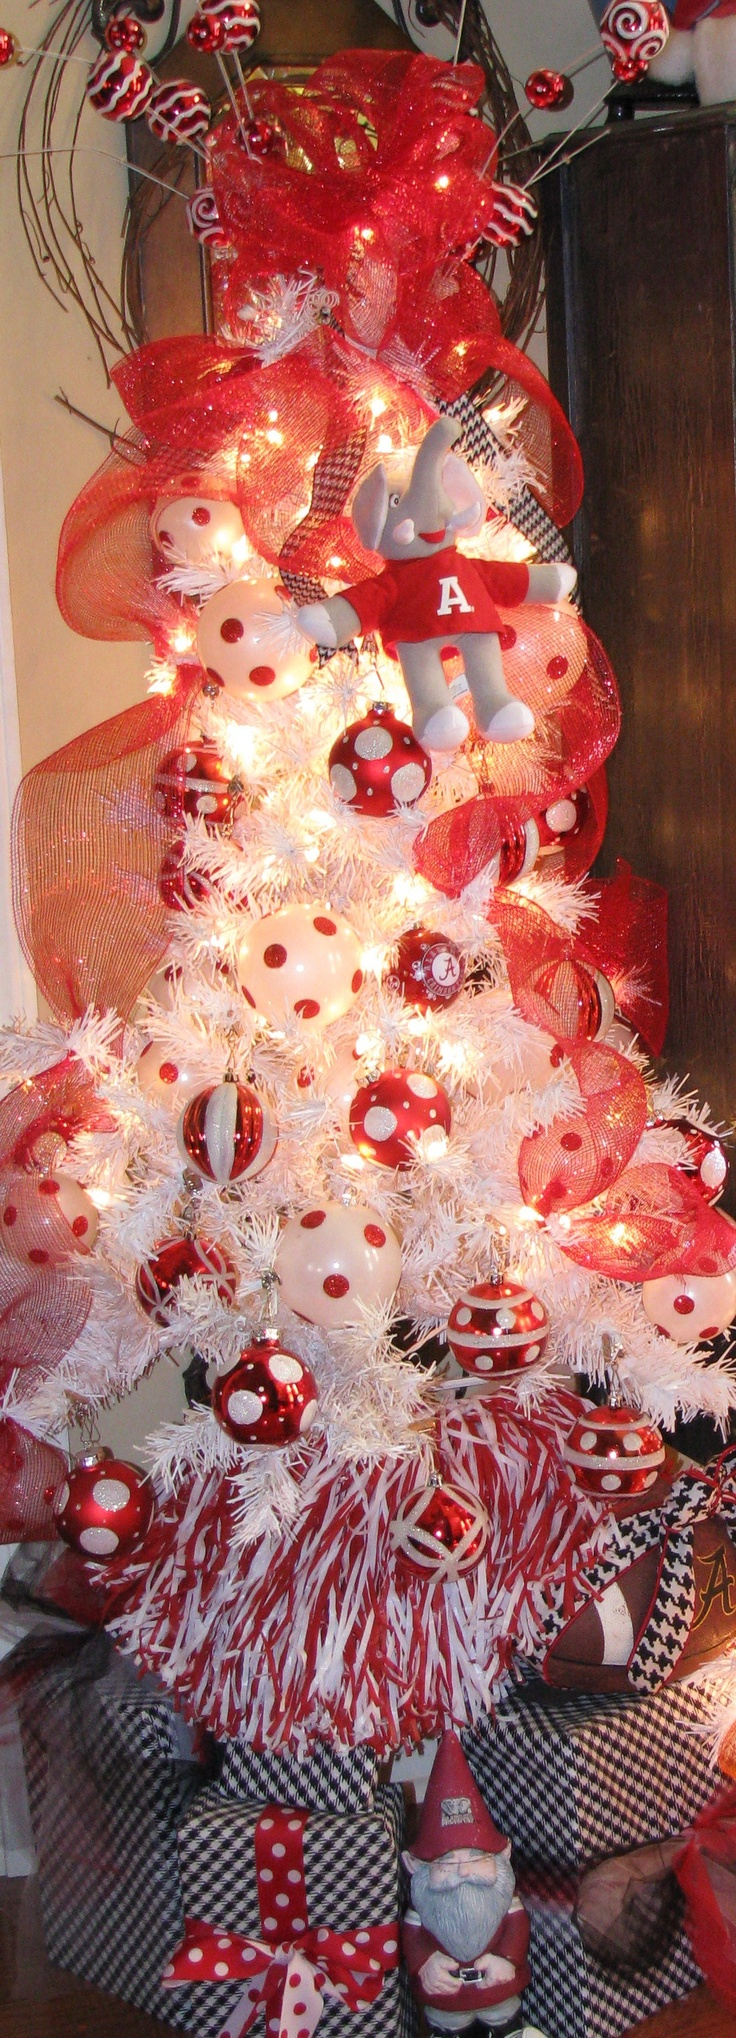 ALABAMA CHRISTMAS TREE... I WOULD SO DO THIS IF MY HUSBAND WAS A BAMA FAN